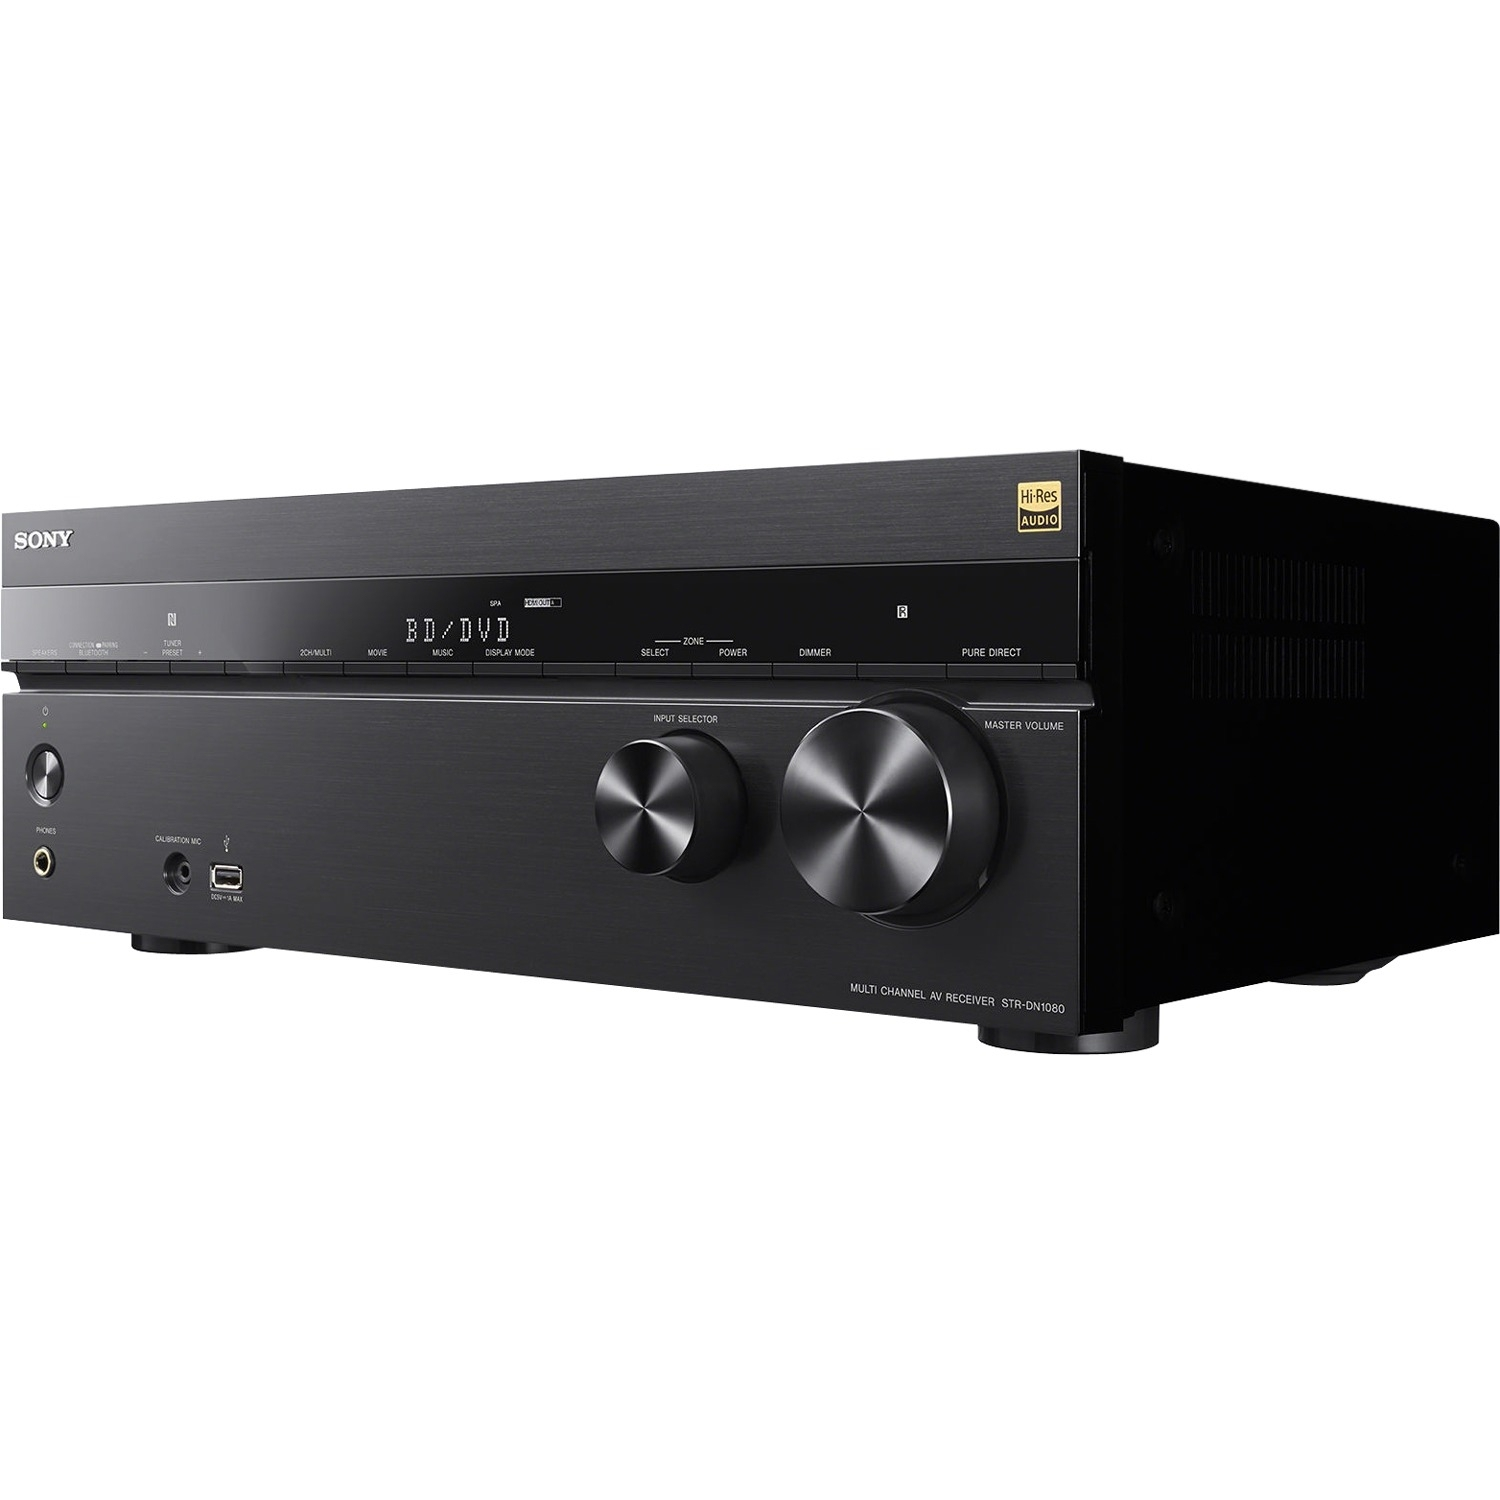 Sony AV Receiver 7.2 Channel Dolby Atmos Home Theatre AV Reciever - 0